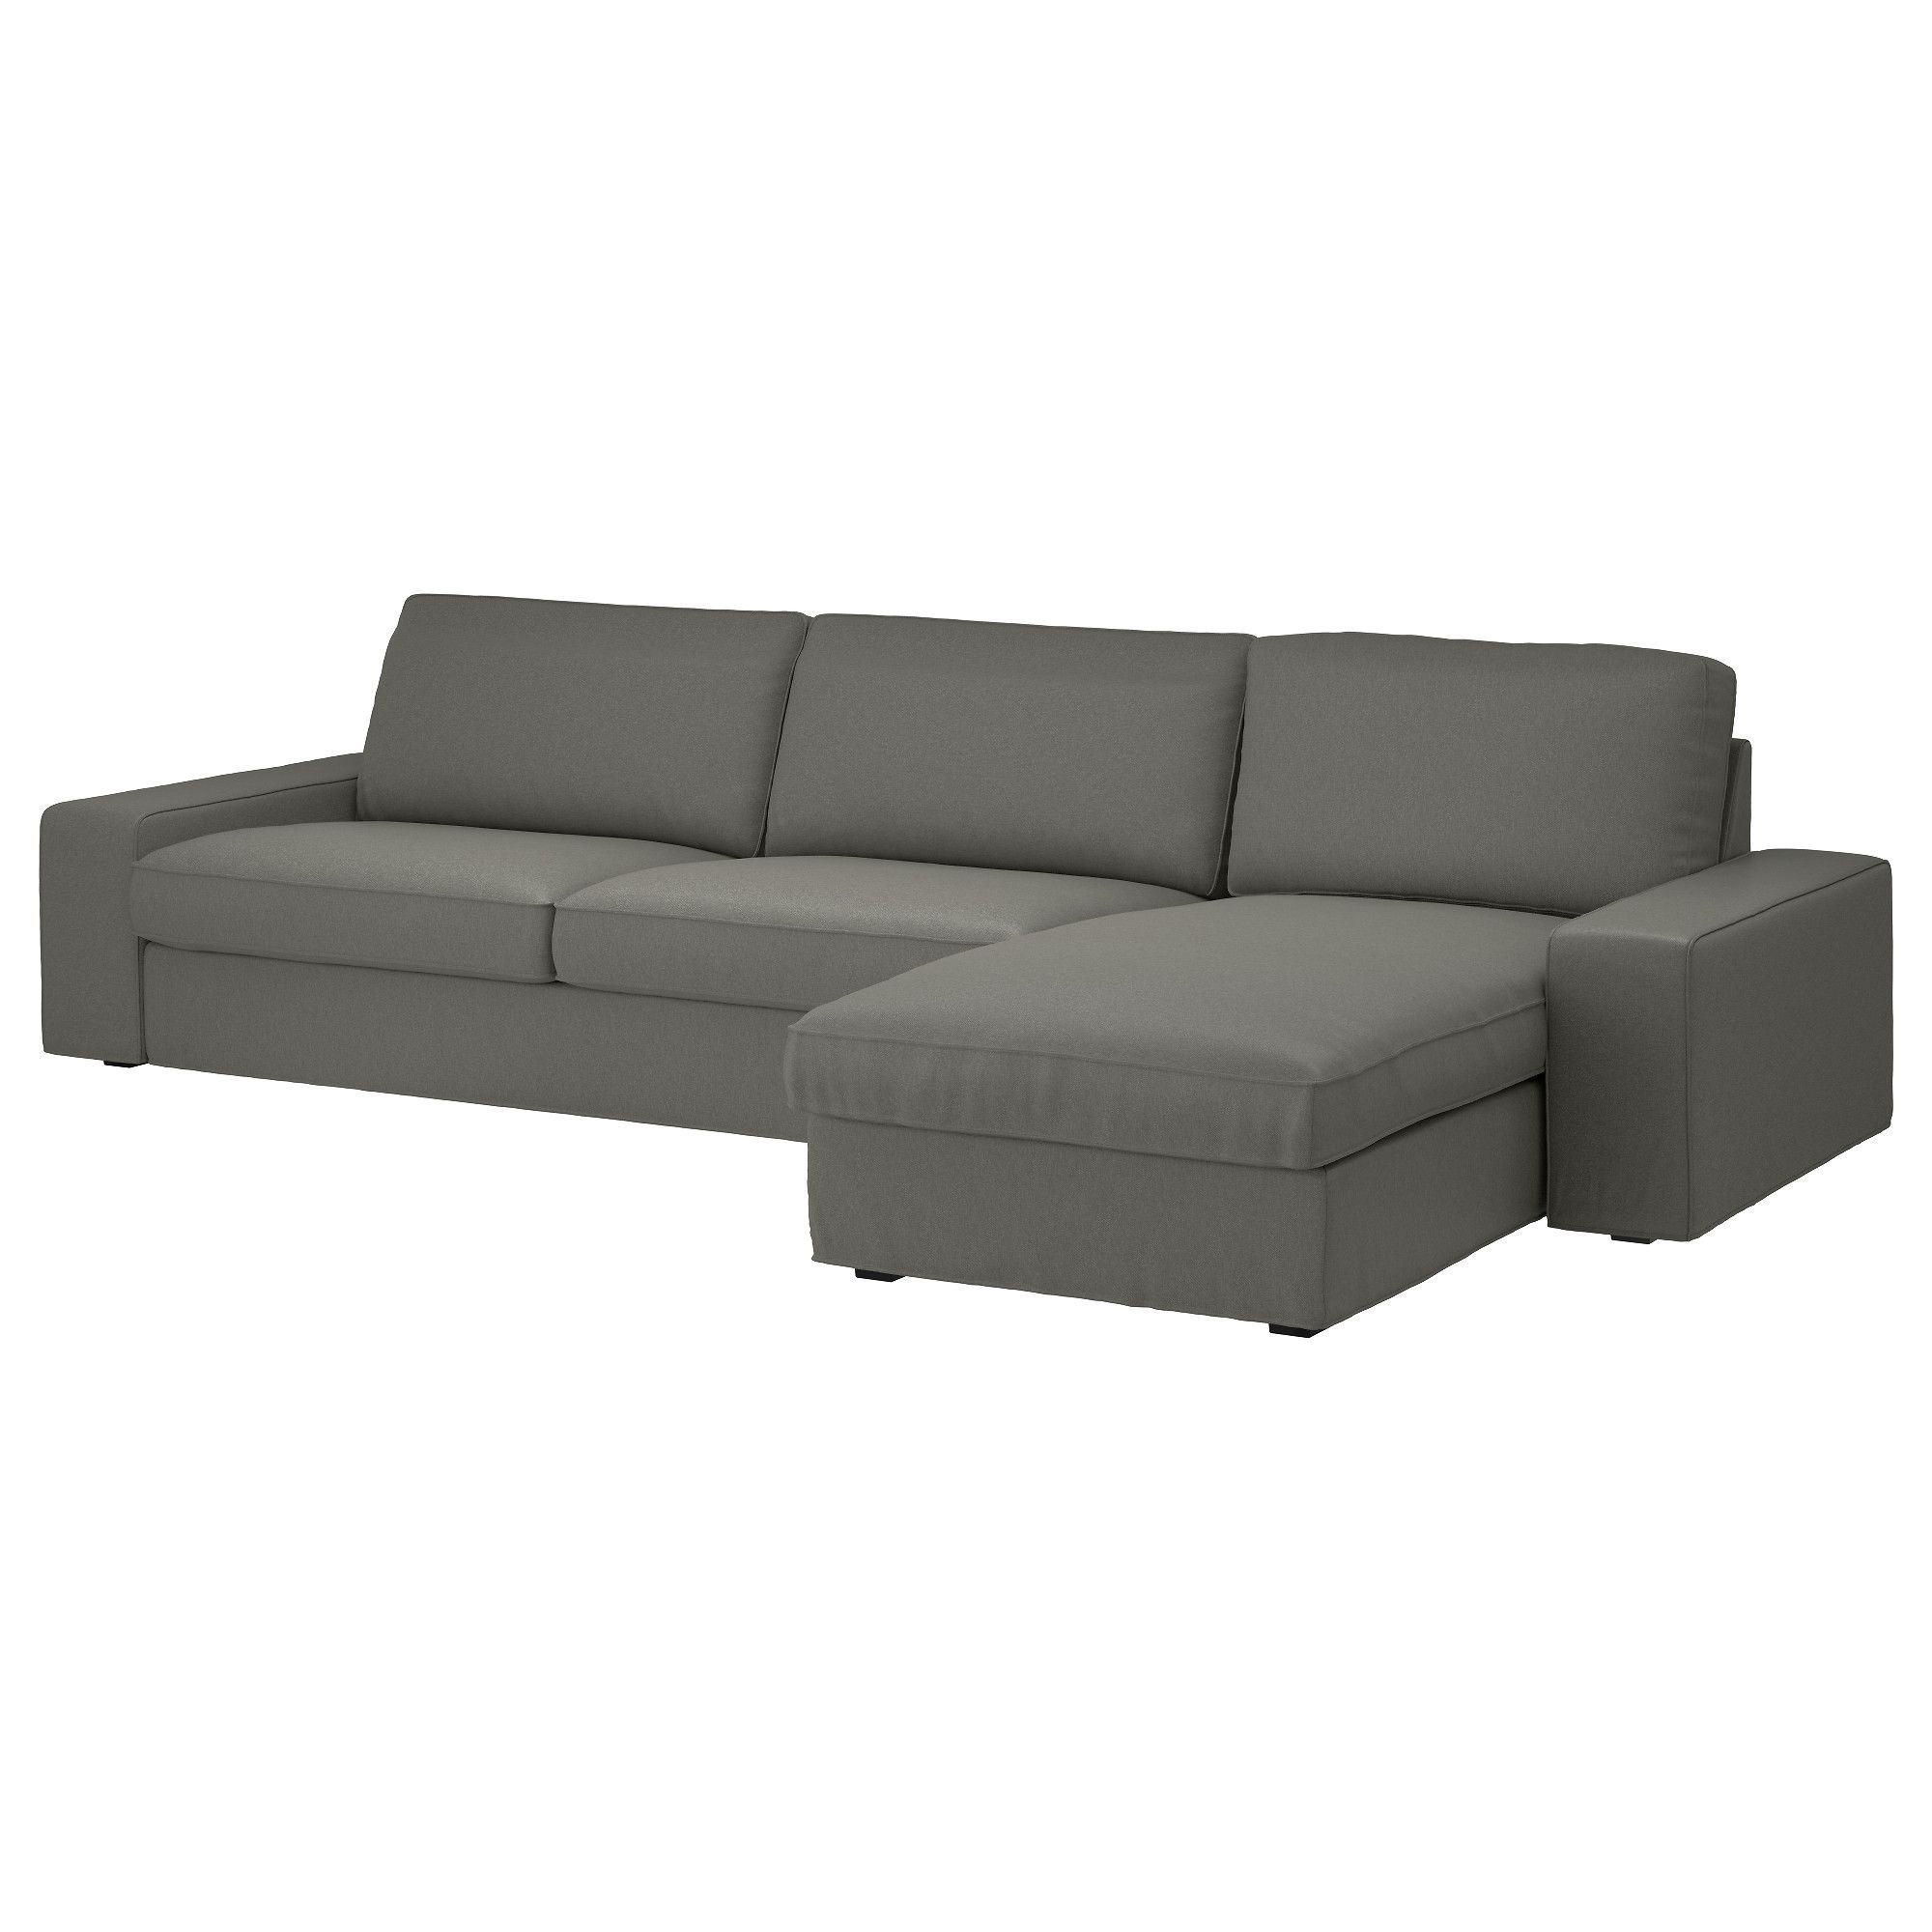 Slim Couches With Images Kivik Sofa Ikea Sectional Fabric Sofa